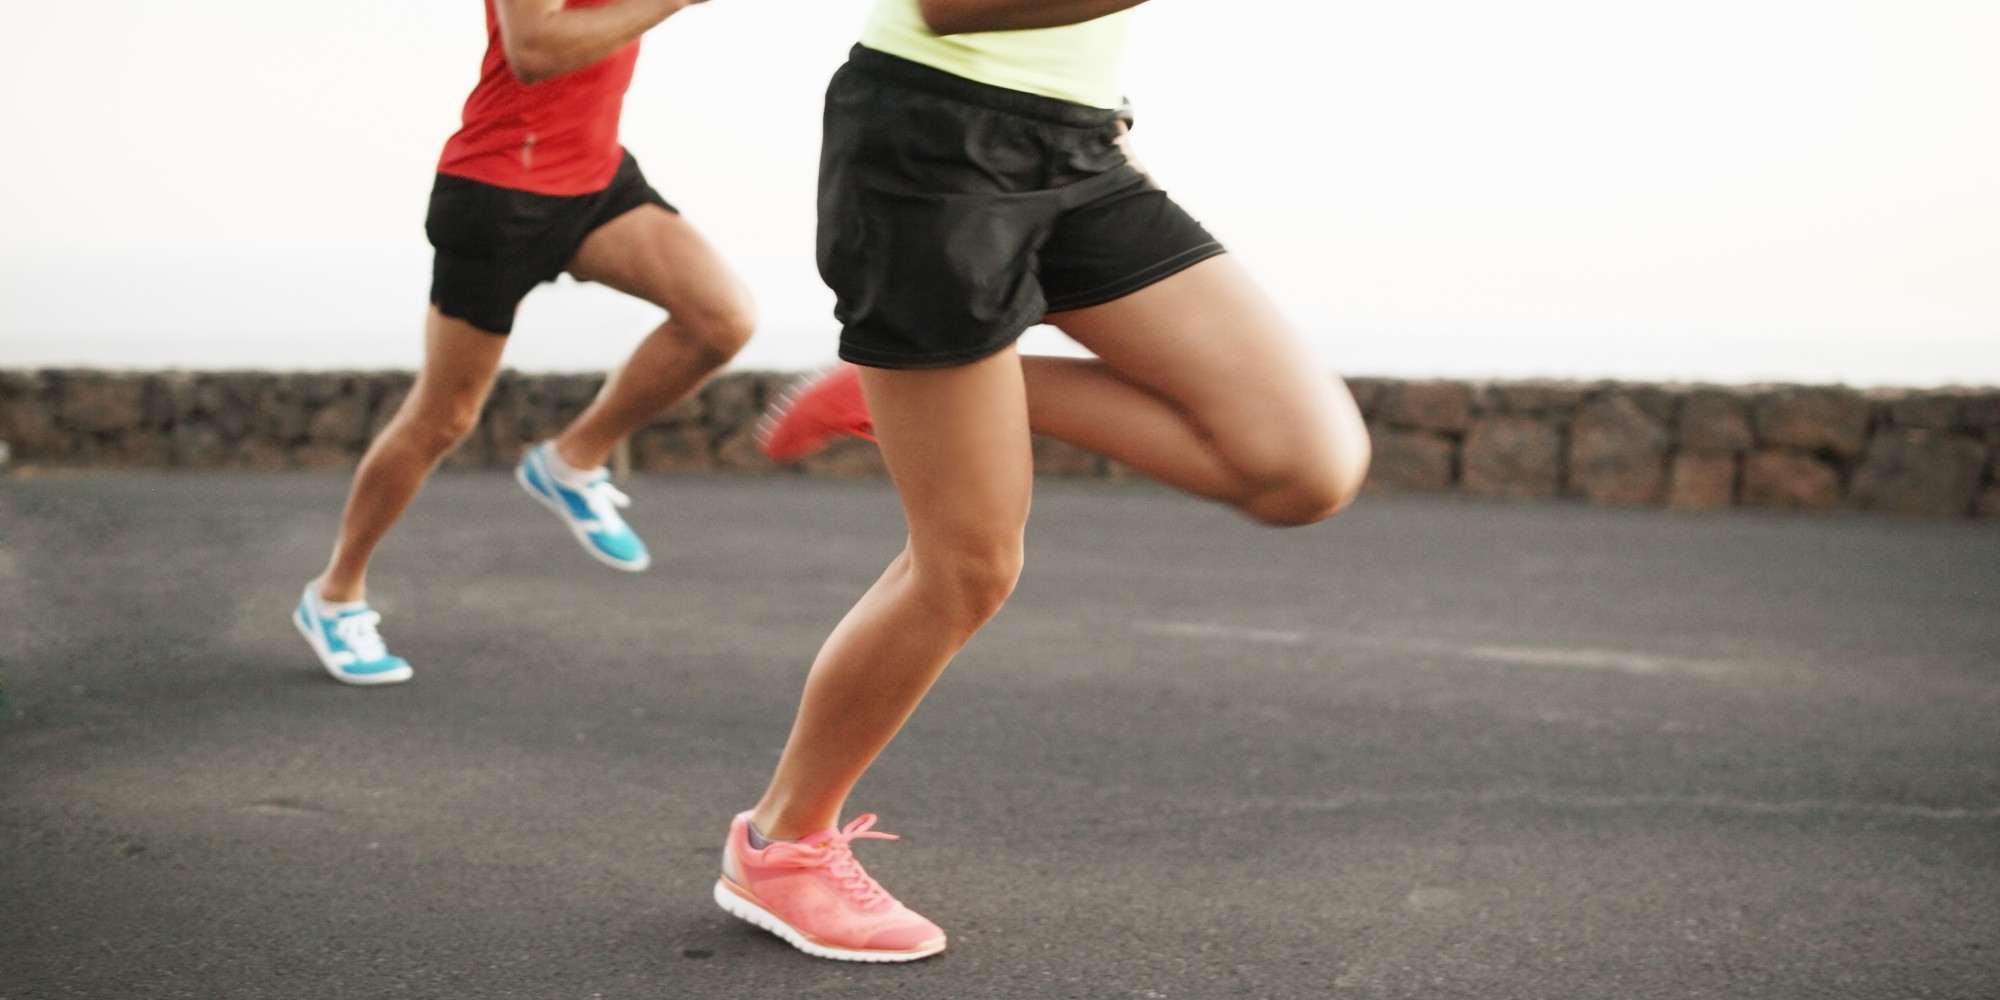 how to get more energy when running